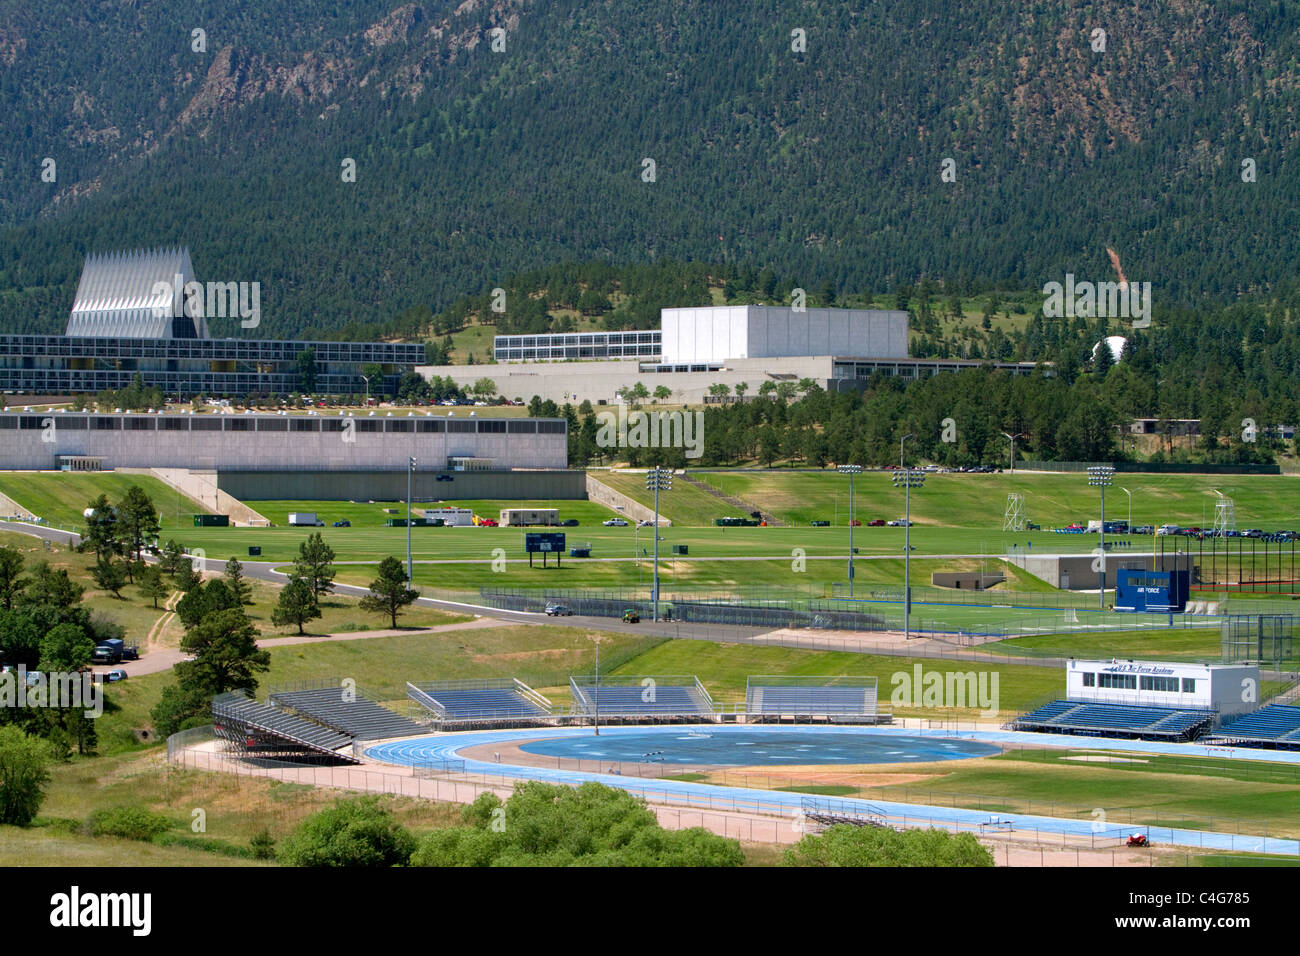 The campus of the United States Air Force Academy in Colorado Springs, Colorado, USA. - Stock Image